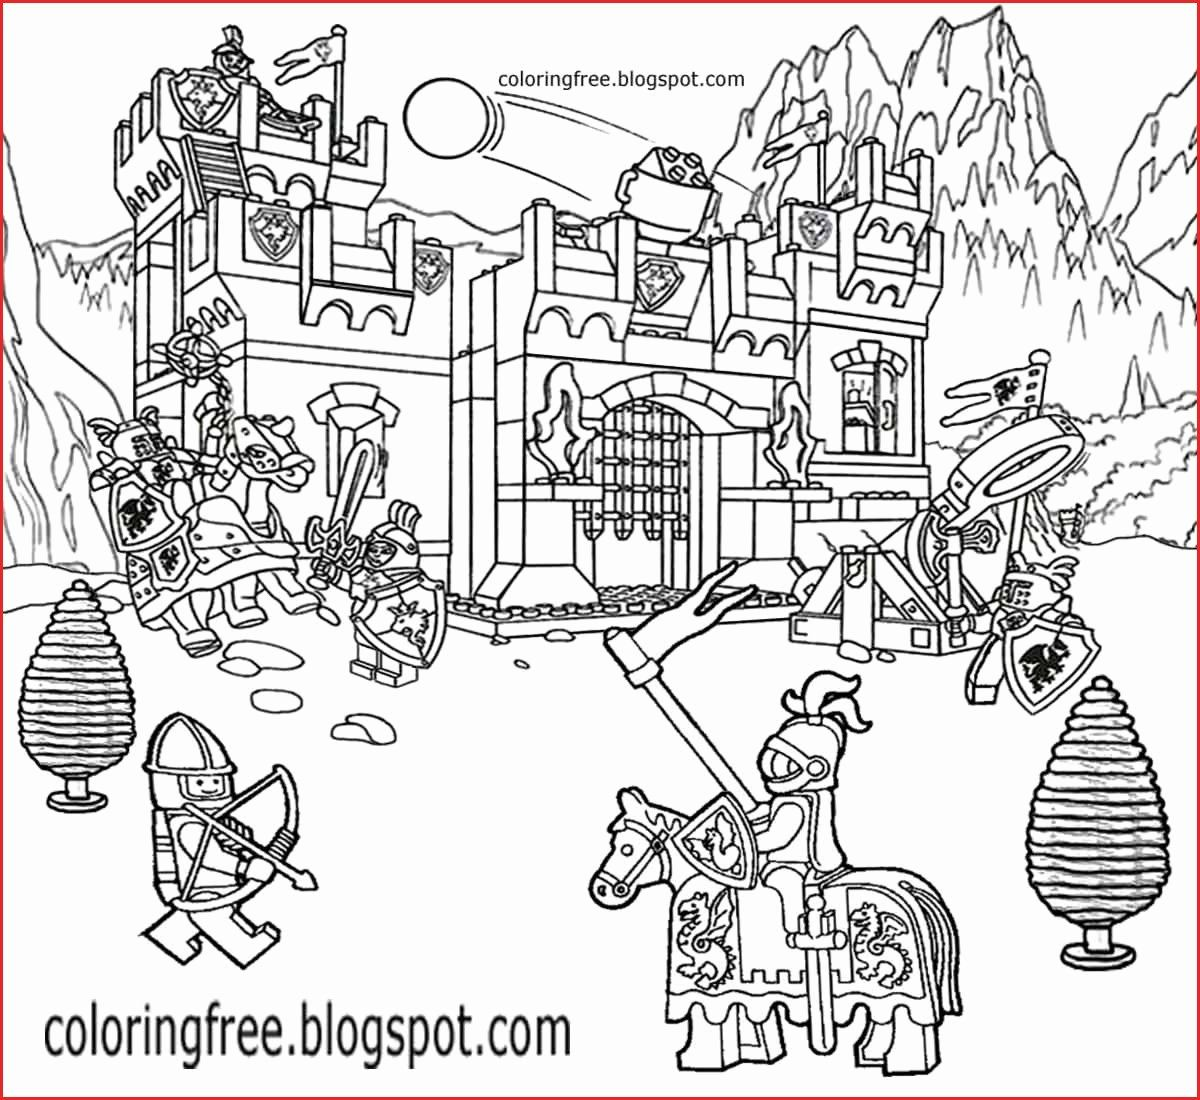 Coloring Fall Tree Best Of Lego City Coloring Pages Tree Fort Fun Printable Coloring Pages Ninjago Coloring Pages Lego Coloring Pages